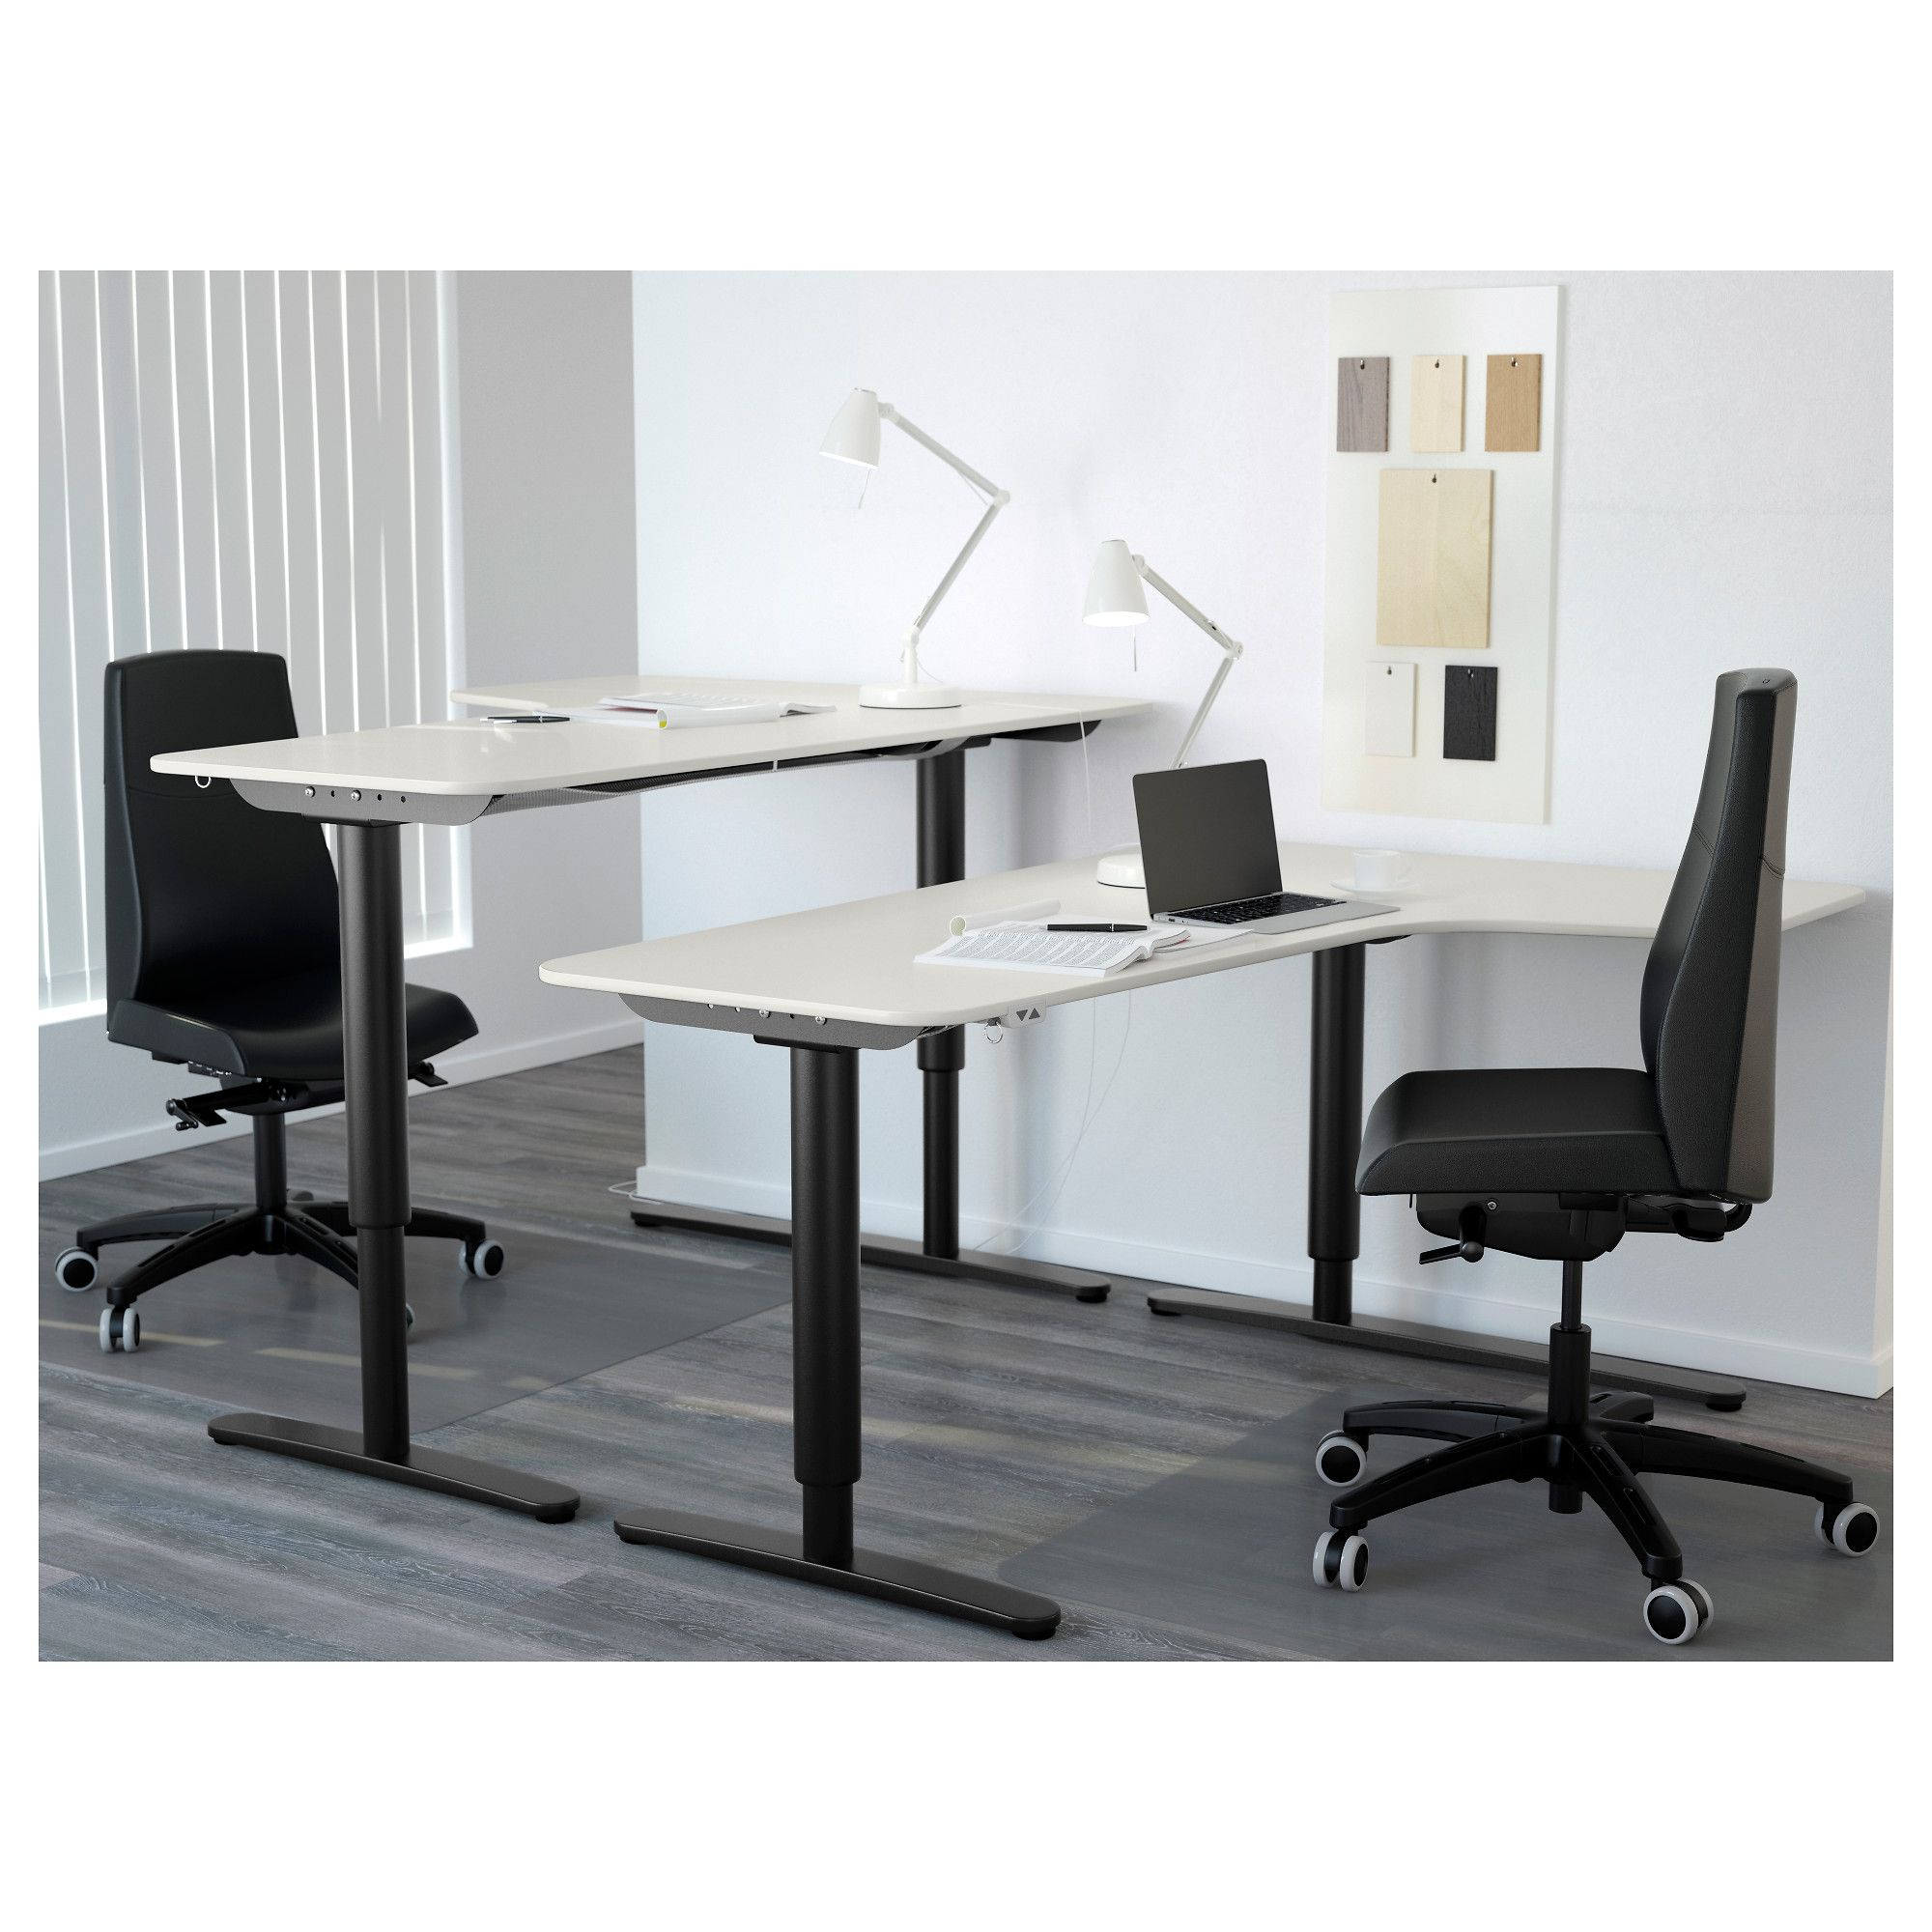 Furniture Home Ikea And Desk FurnishingsNew Bekant Office Rjq5A3L4